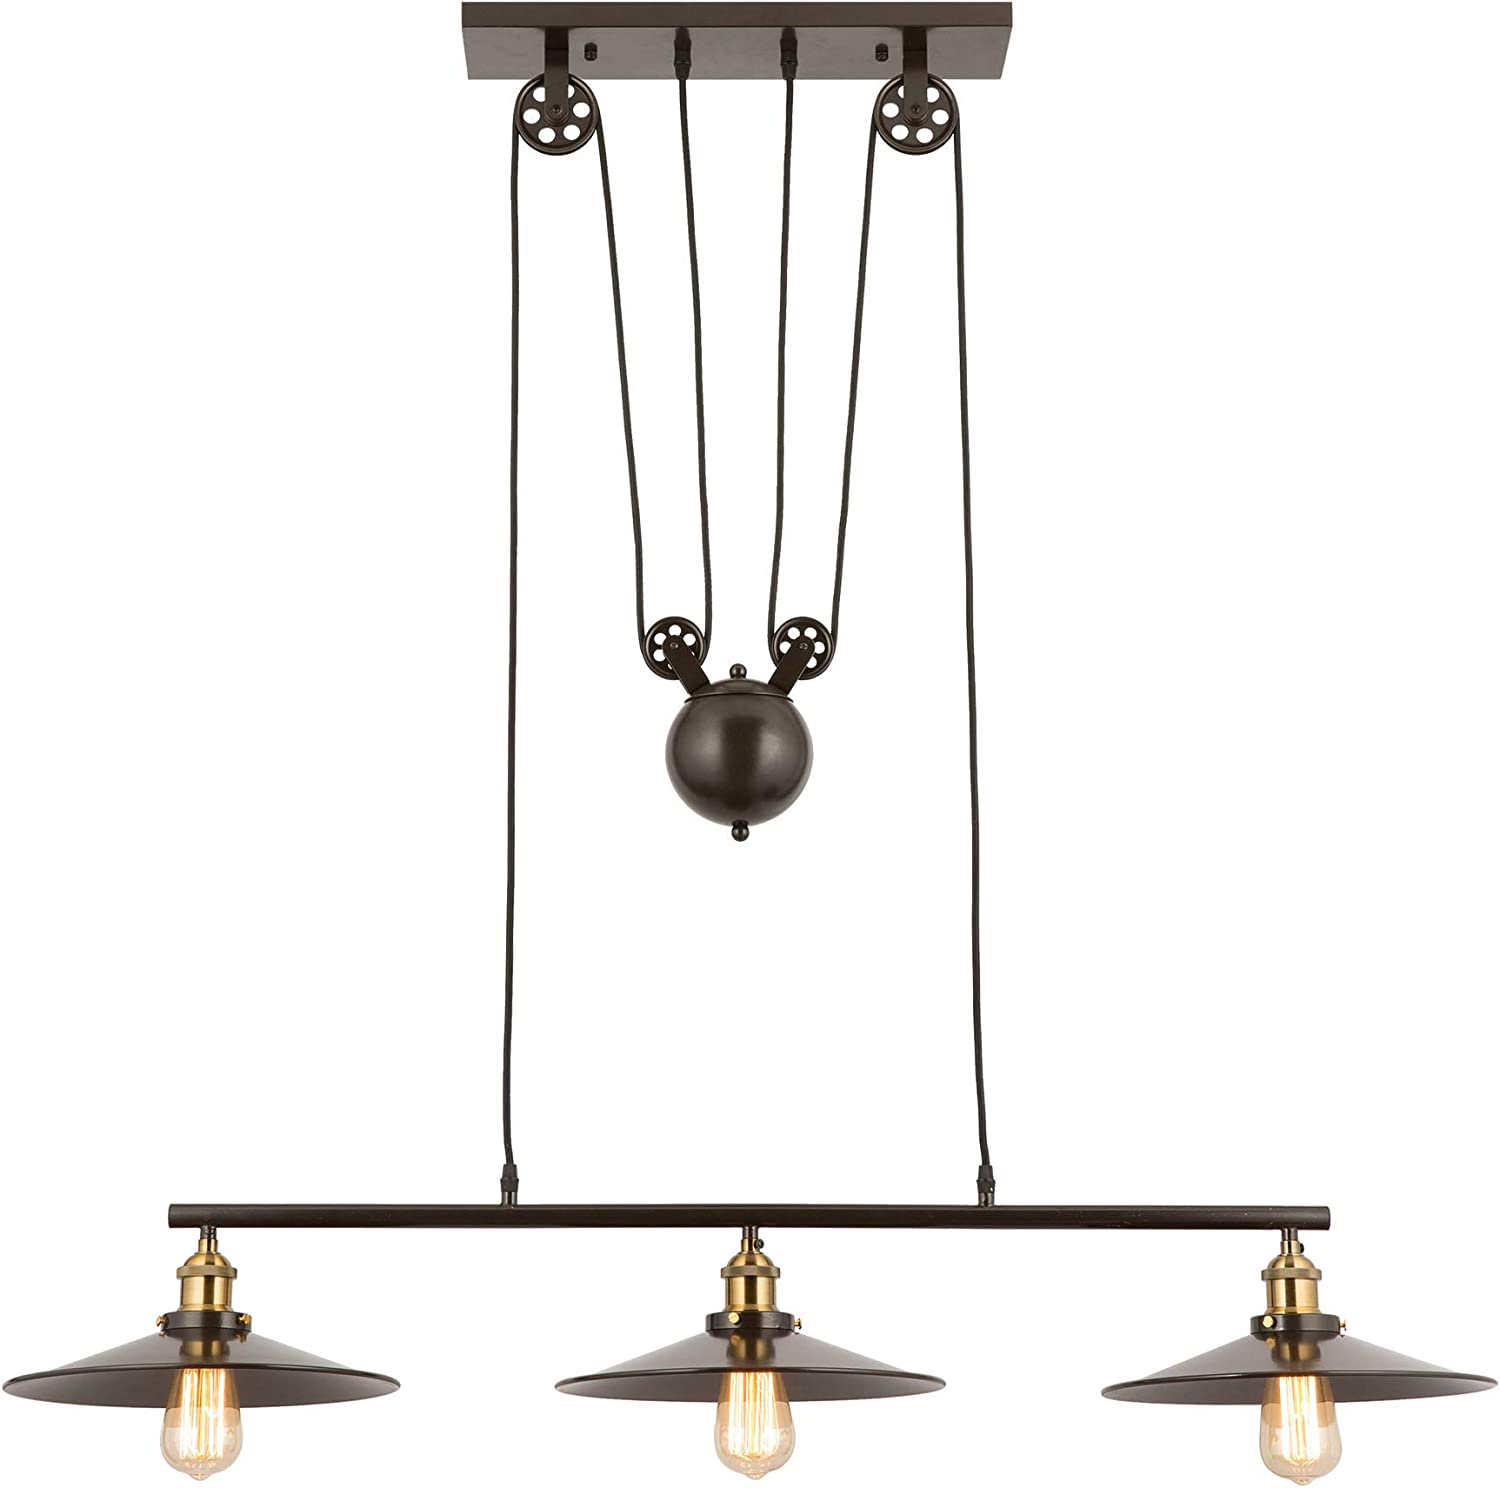 CO-Z Industrial Pulley Light, Adjustable Oil Rubbed Bronze Hanging Light for Kitchen Island, Billiard Pool Table, Kitchen Bar, 3 Light Pendant Lighting Fixture Farmhouse Linear Chandelier